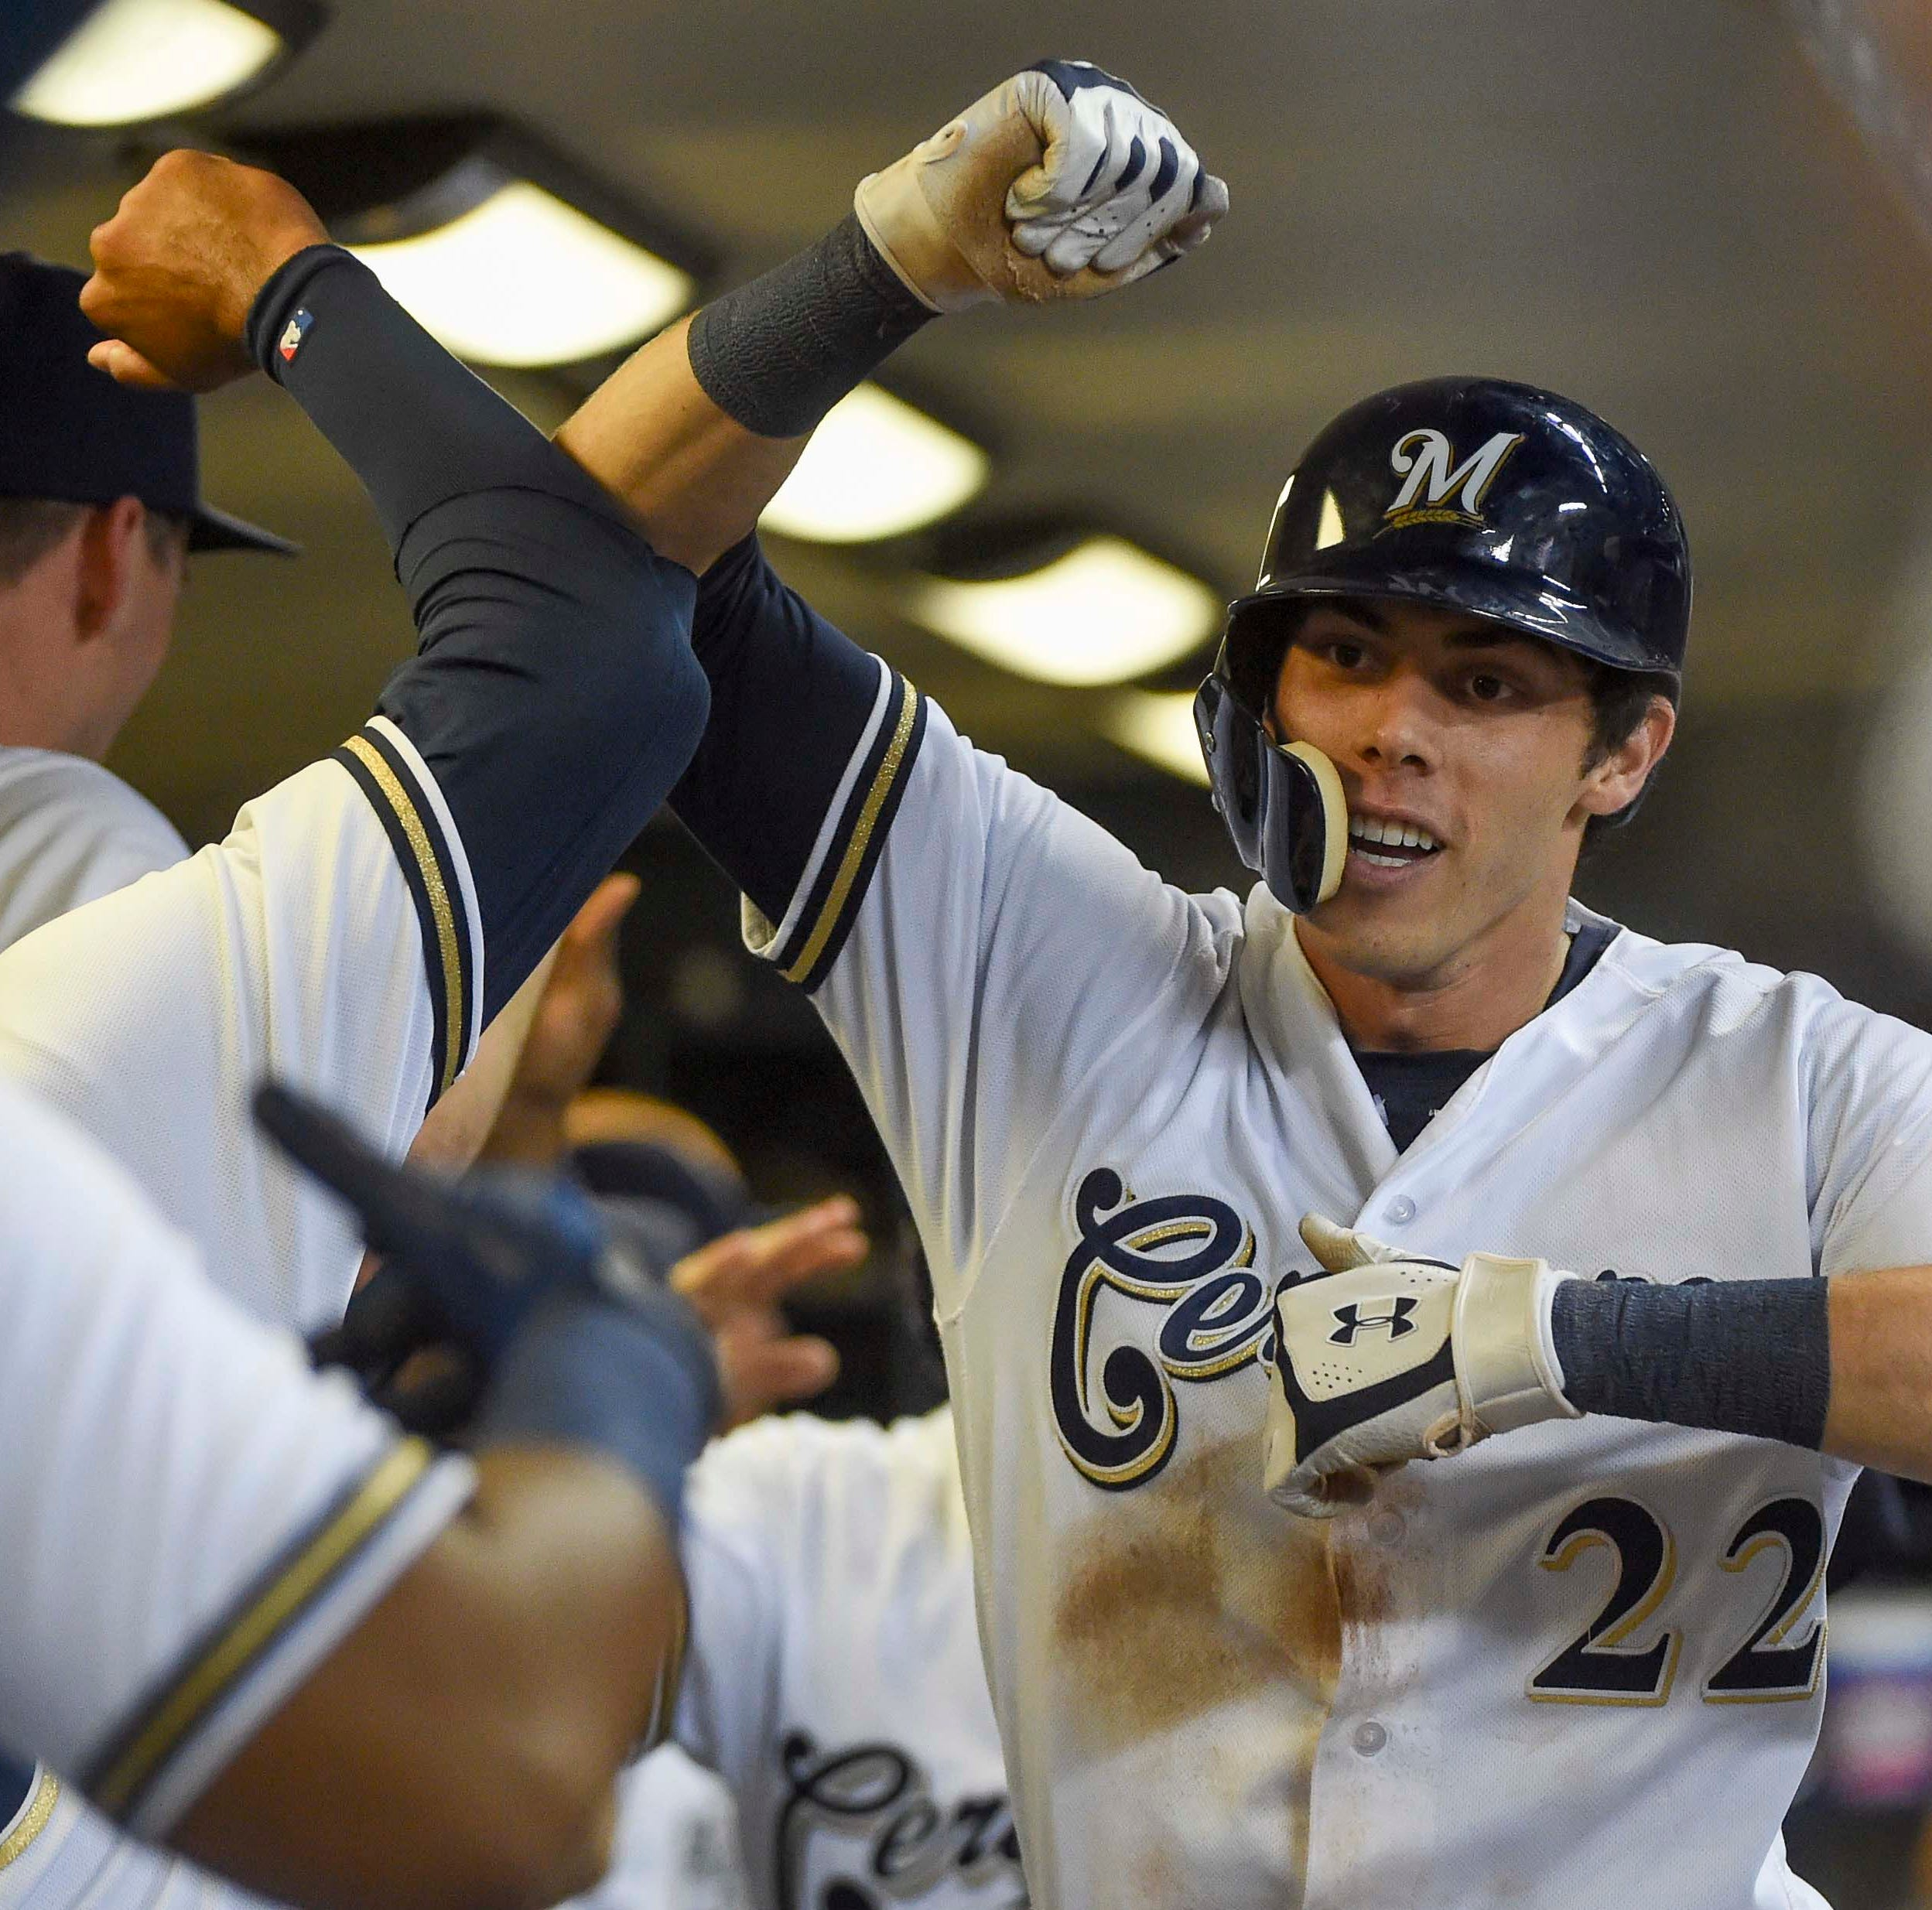 After rare hitless game Sunday for Yelich, his manager thought Reds might be in trouble